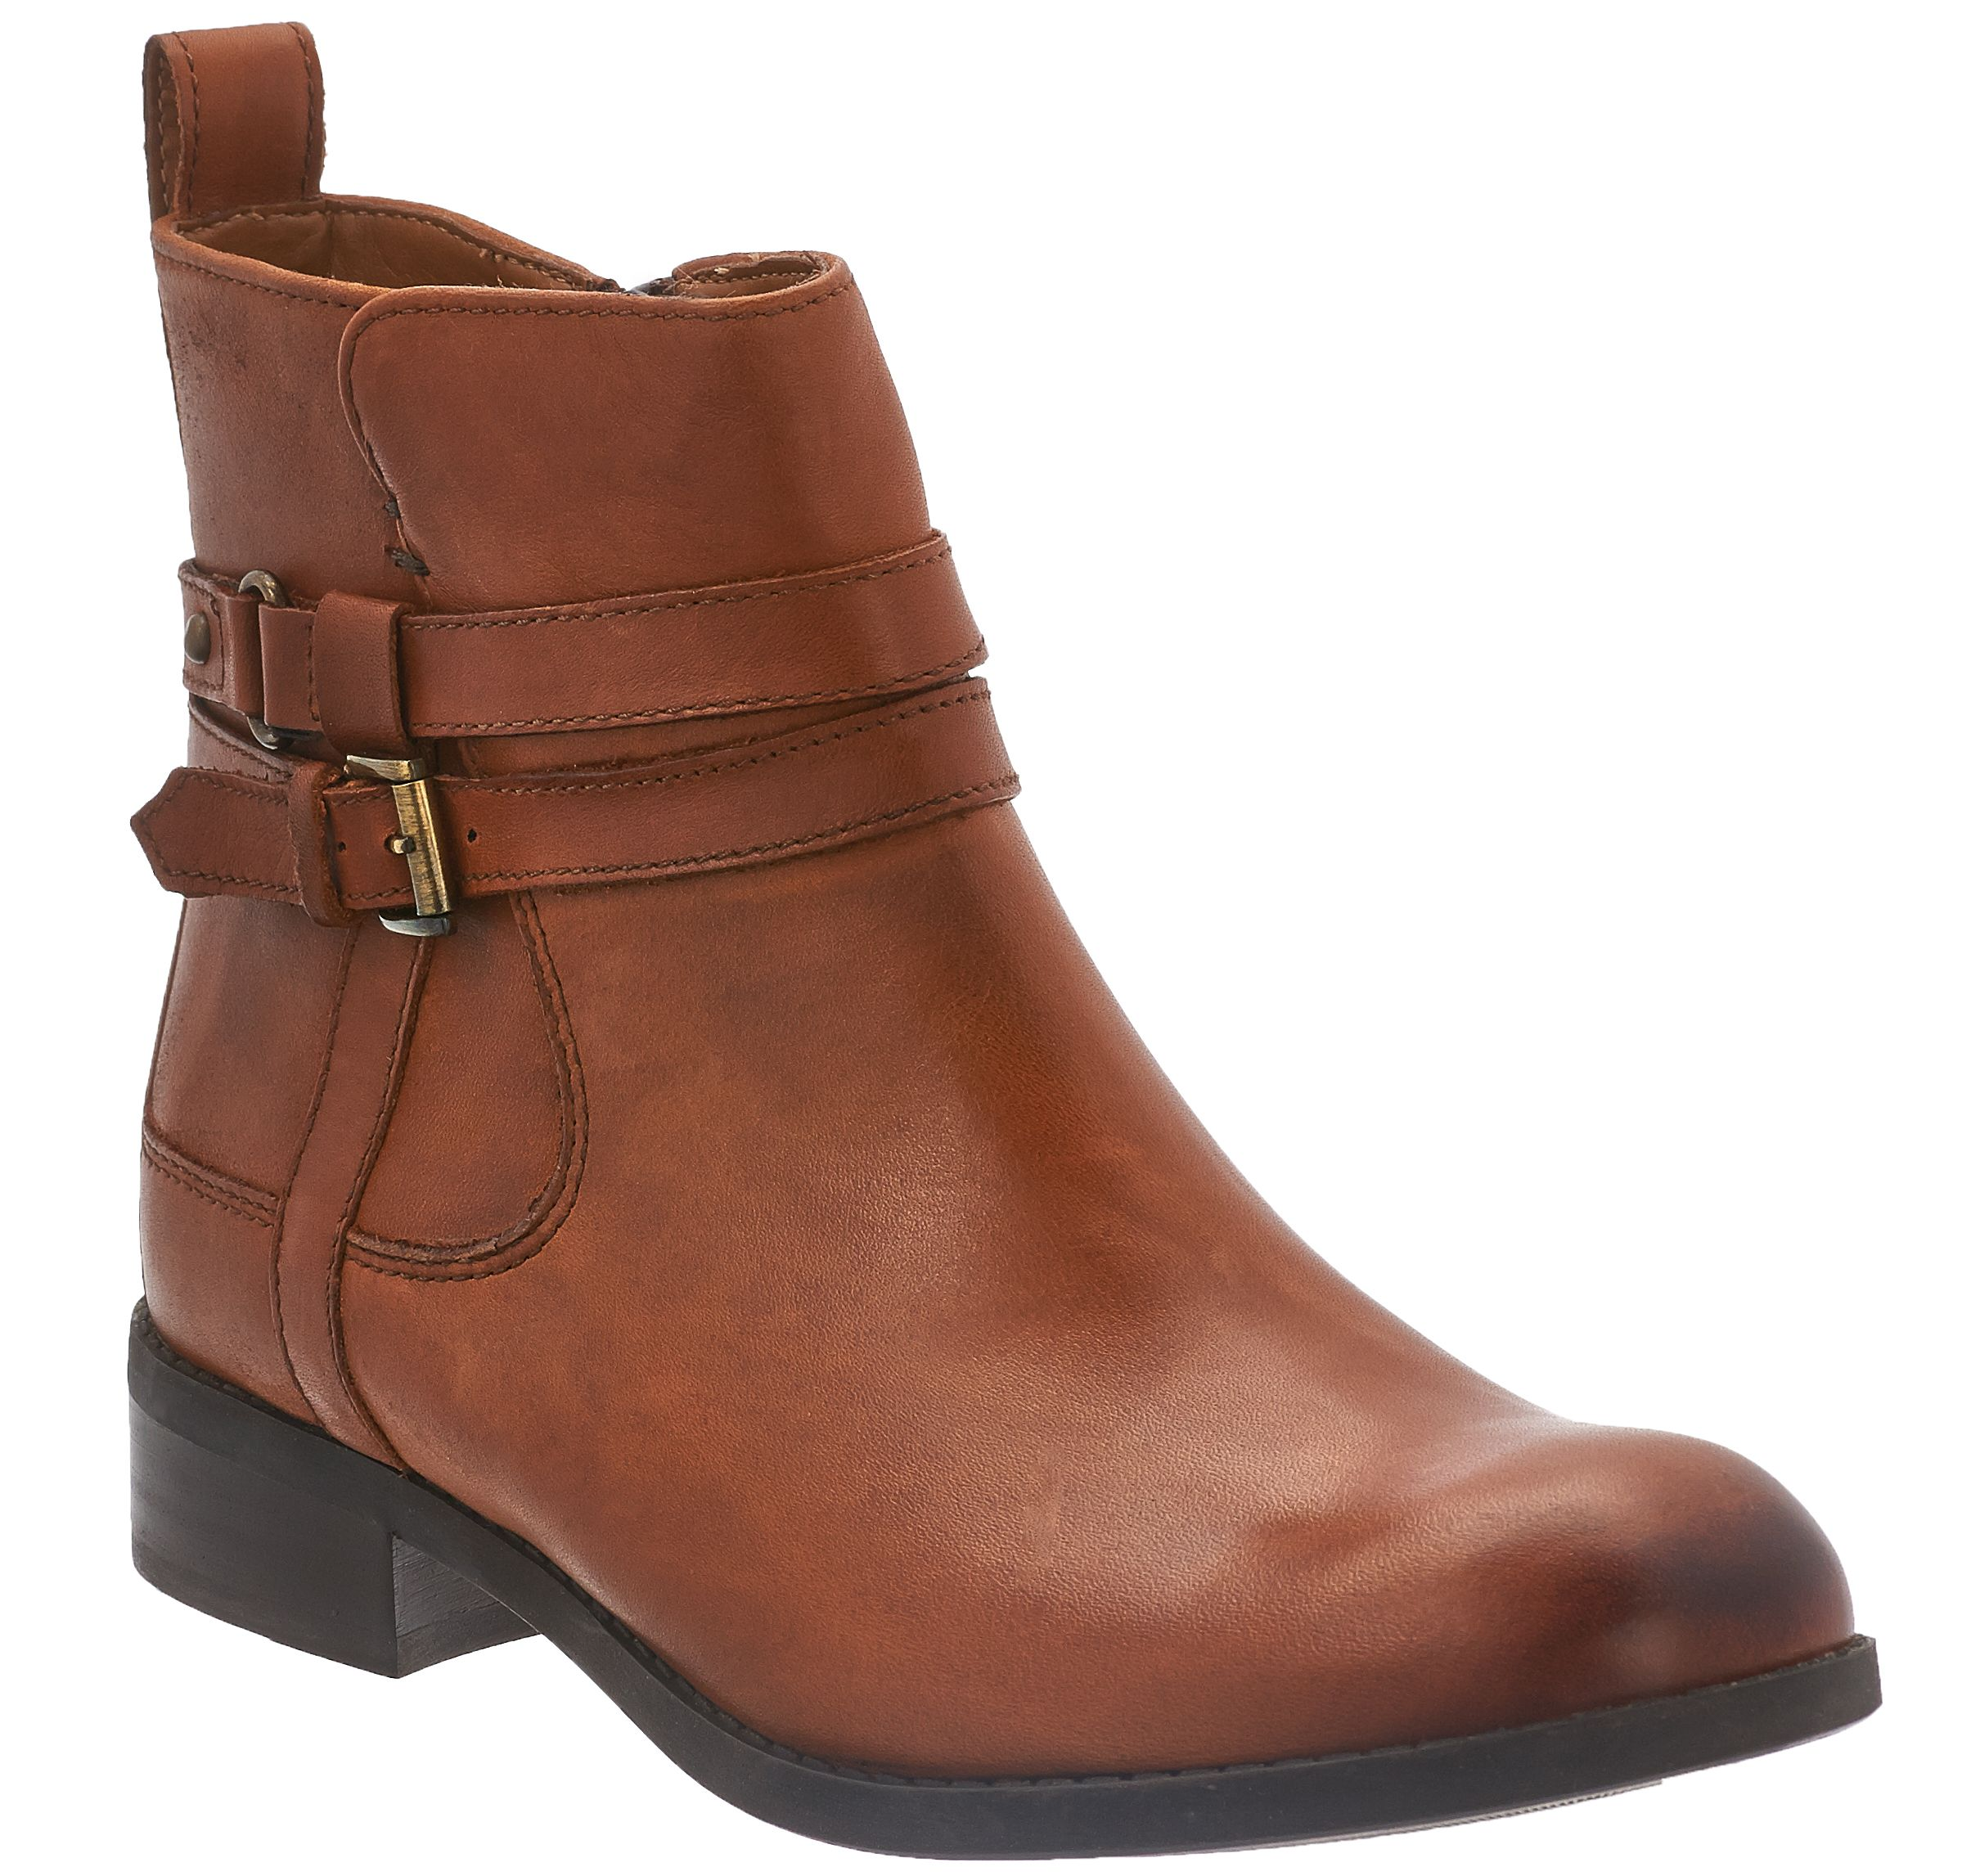 Clarks Artisan Leather Waterproof Ankle Boots - Pita Austin - Page ...